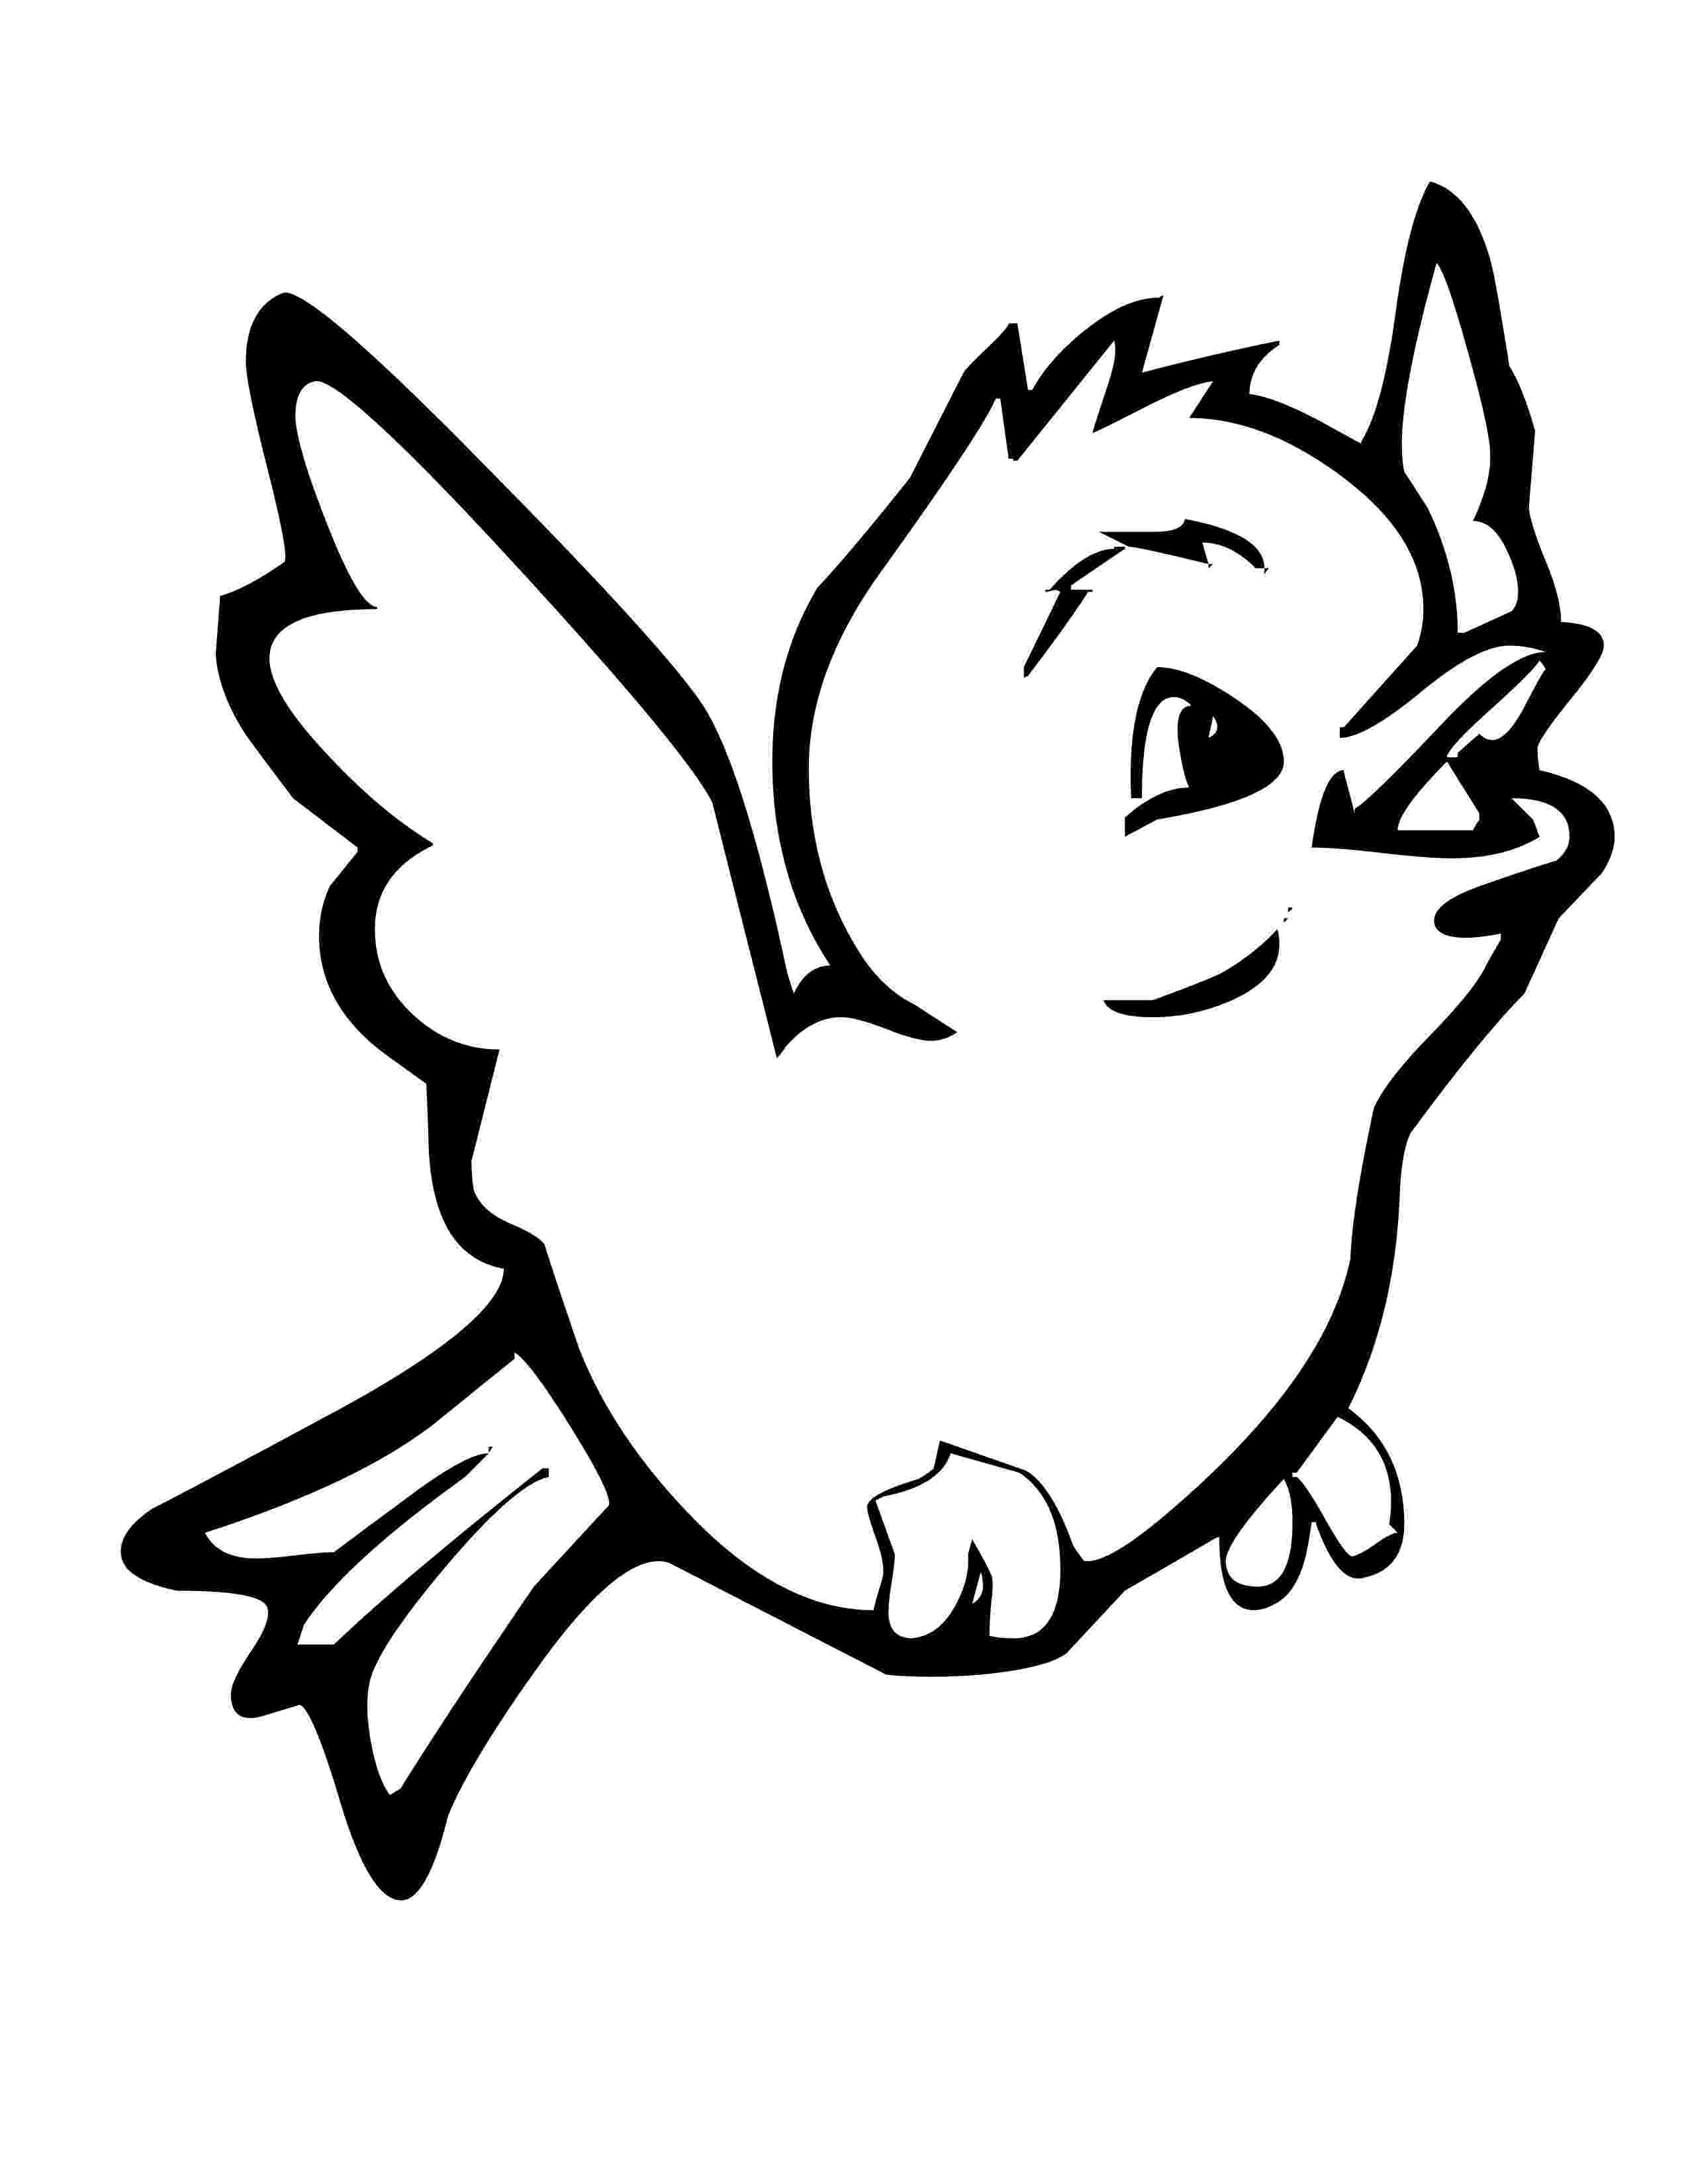 bird coloring images birds coloring pages getcoloringpagescom bird images coloring